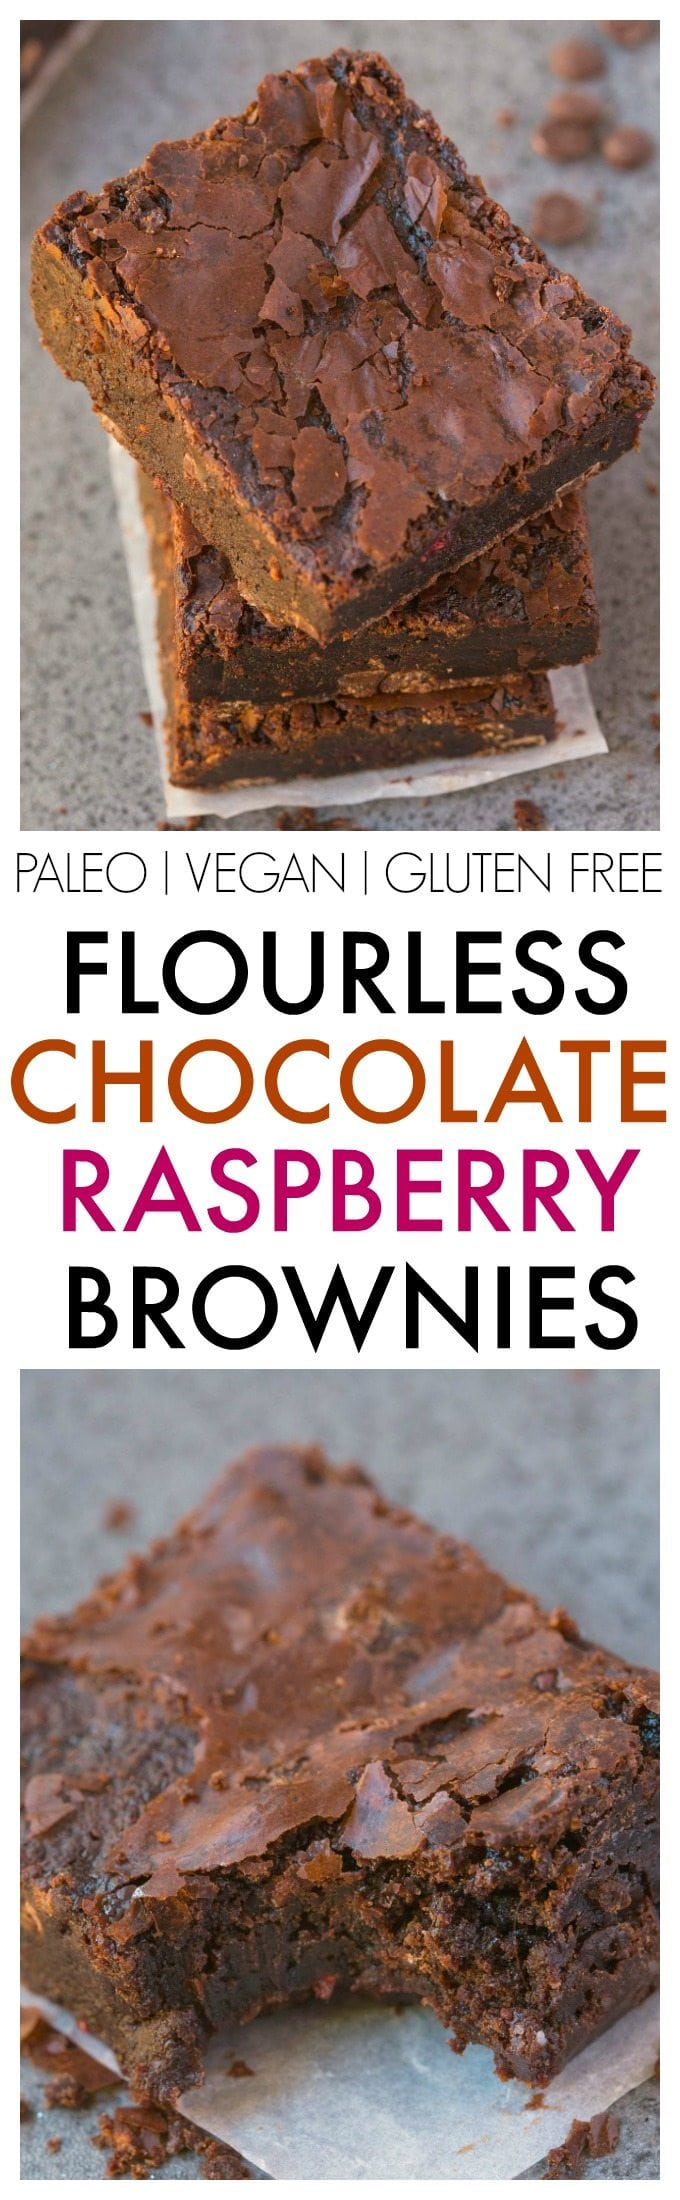 Healthier Flourless Chocolate Raspberry Brownies made with NO flour and NO butter and BETTER than boxed mixes- Fudgy, moist, gooey and with those gorgeous crinkled tops! {vegan, gluten free, paleo recipe}- thebigmansworld.com